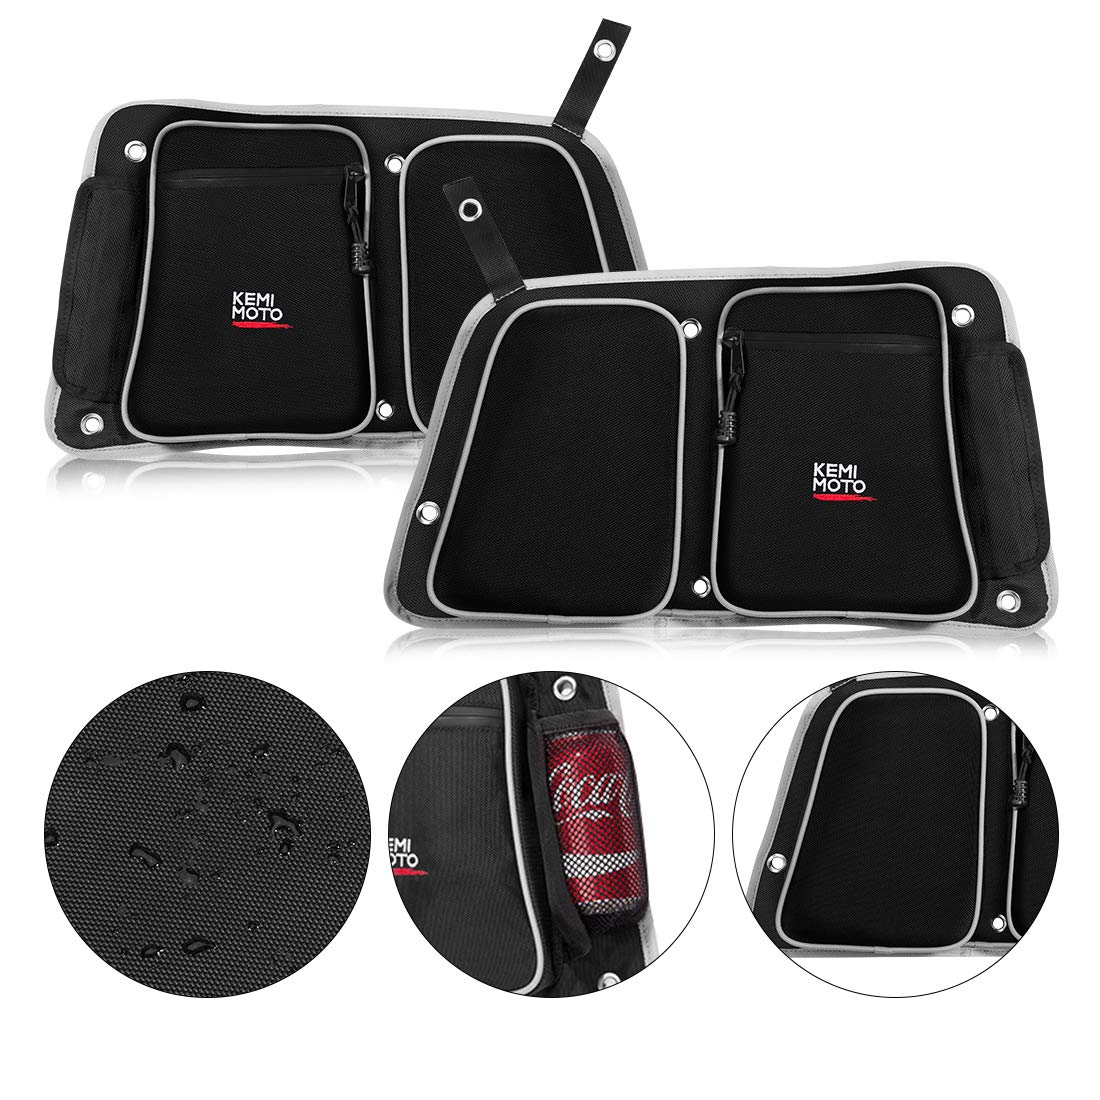 RZR Rear Door Bags, KEMIMOTO Passenger and Driver Side Storage Bag Set with Knee Pad Compatible with 2014-2019 Polaris RZR 4 900, XP4 1000, 4 Door Turbo by kemimoto